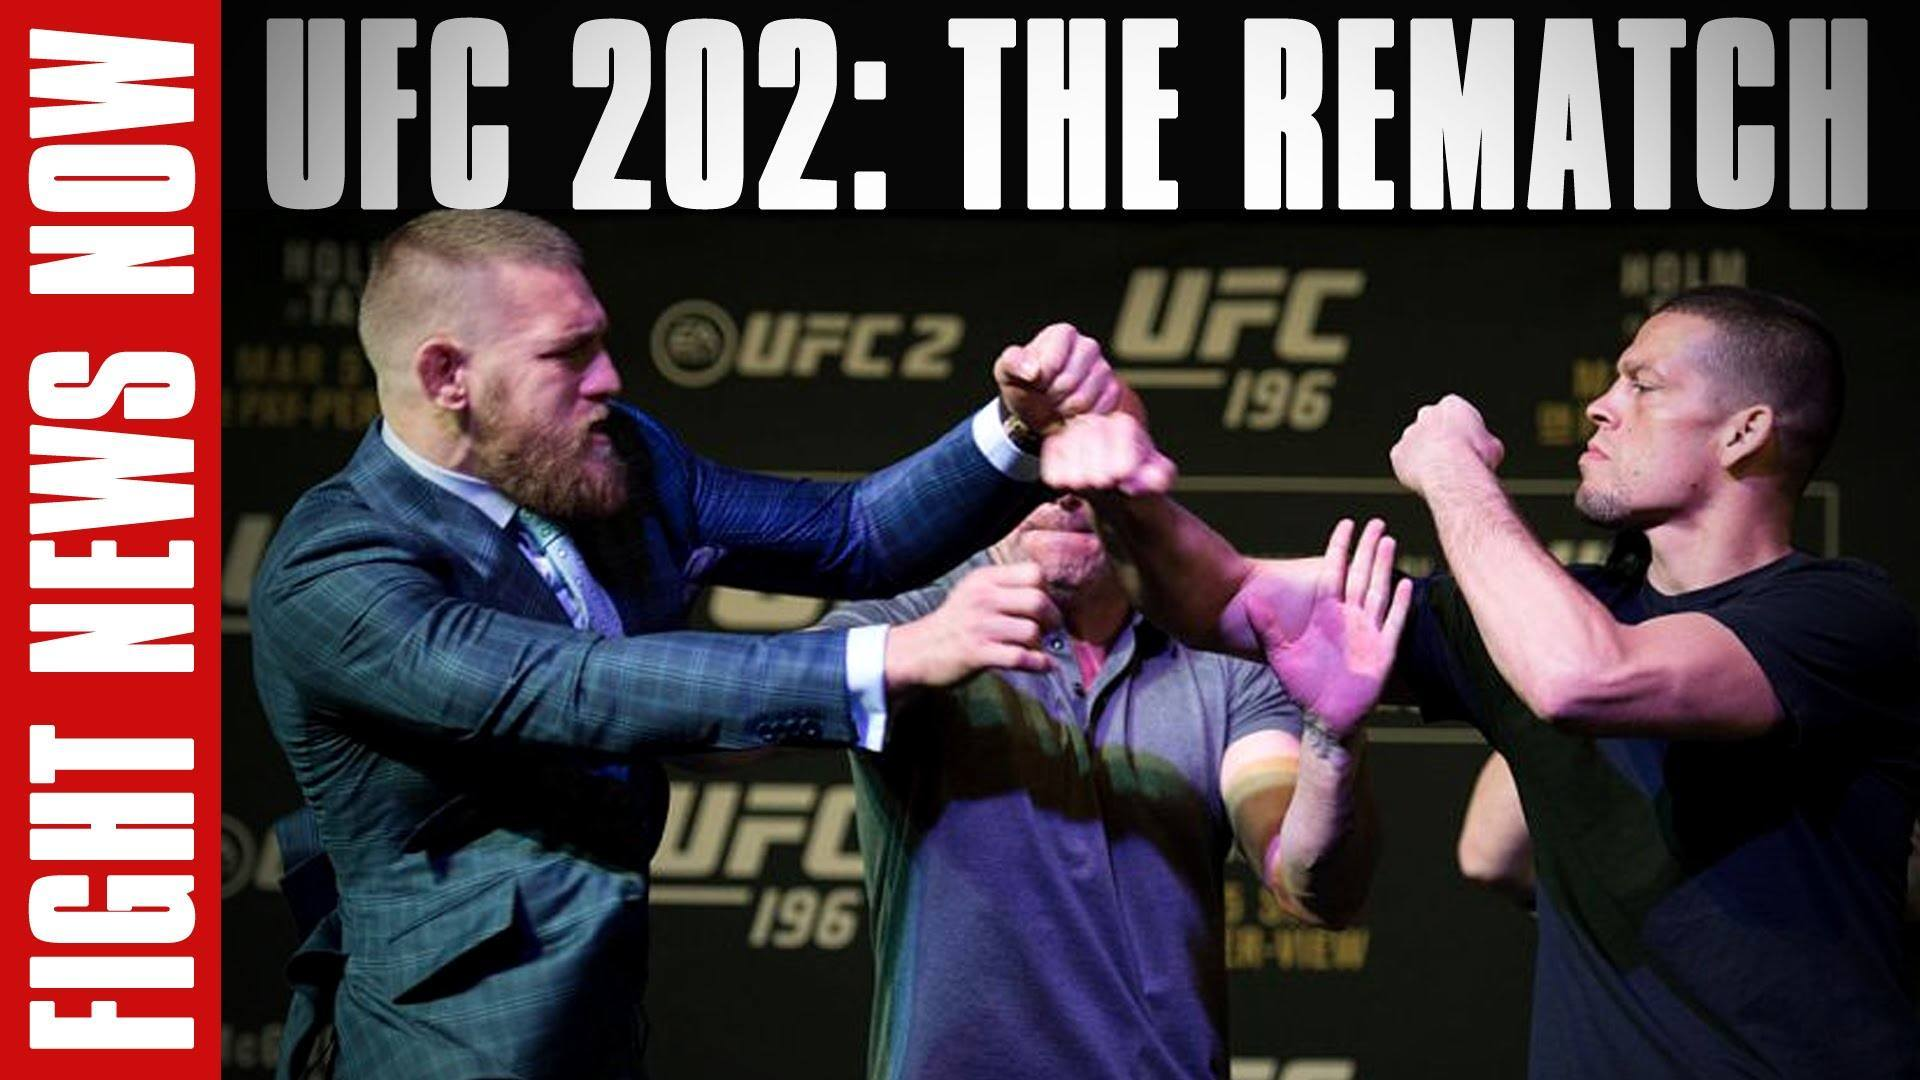 UFC-202-Nate-Diaz-vs.-Conor-McGregor-Rematch-Ariel-Helwanis-Ban-Lifted-by-UFC-on-Fight-News-Now